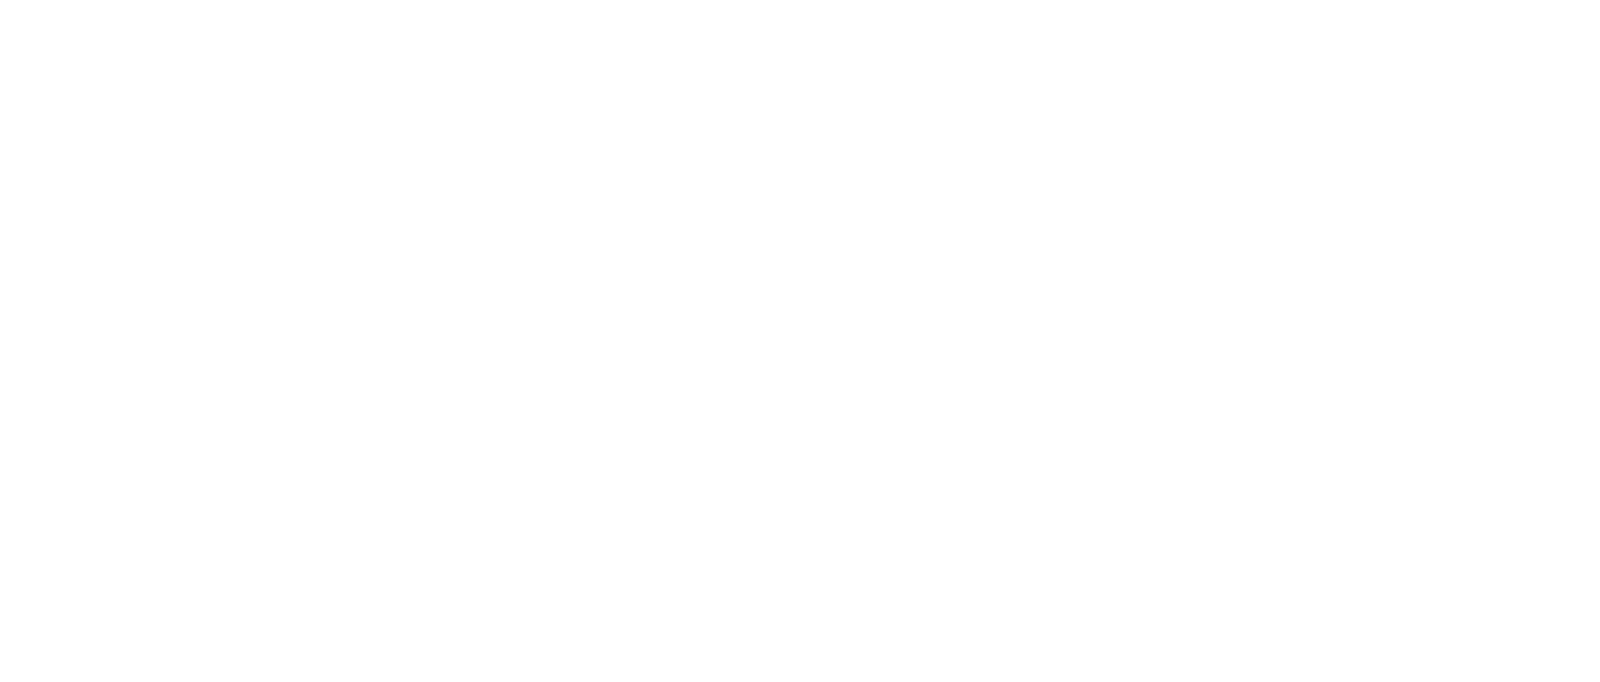 REDUX WORKSHOP